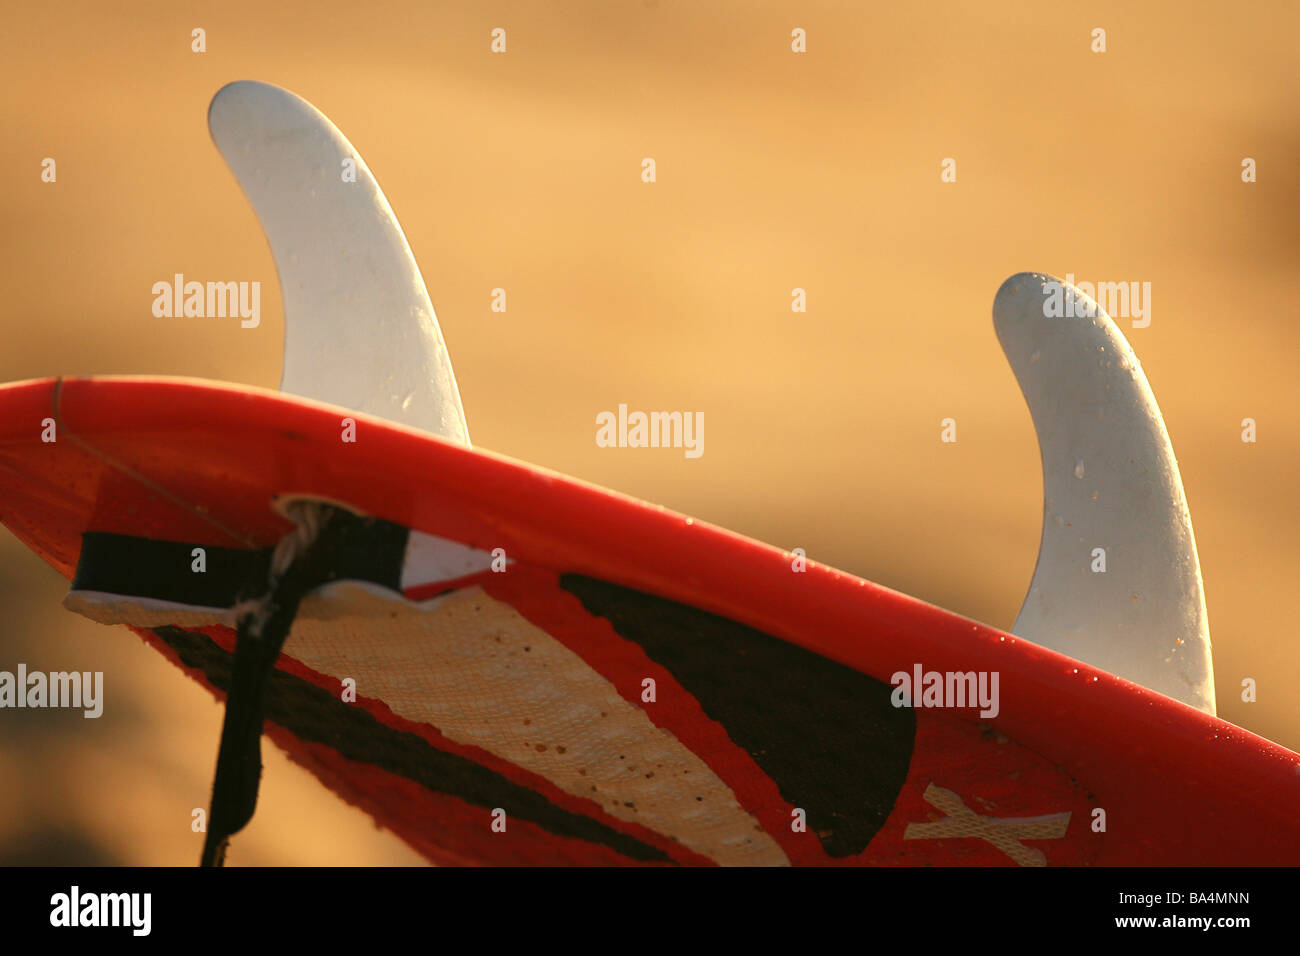 Detail of a Surfboard - Stock Image